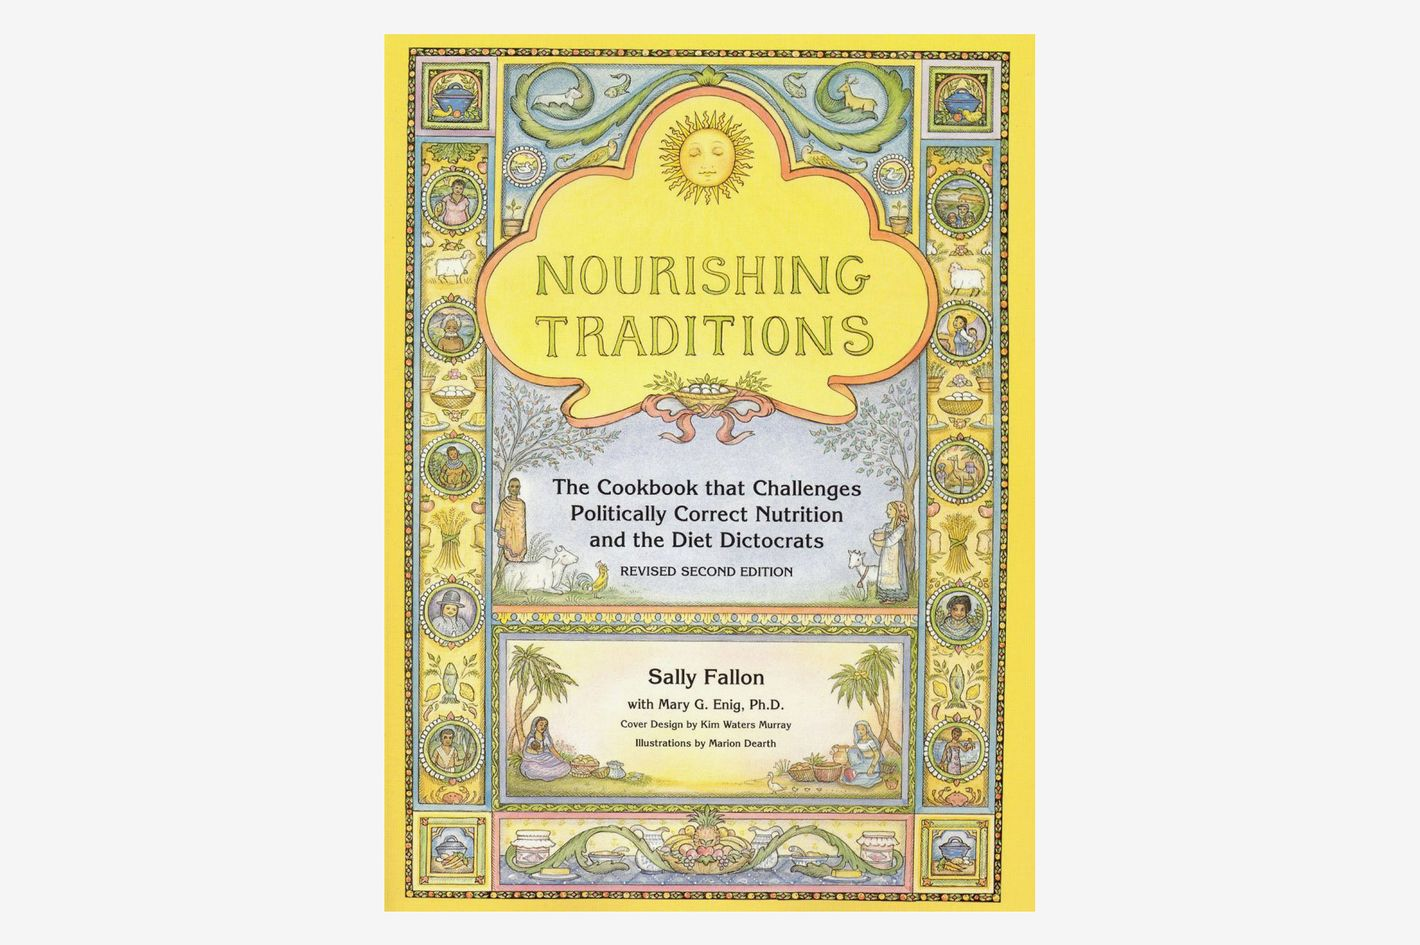 Nourishing Traditions: The Cookbook that Challenges Politically Correct Nutrition and Diet Dictocrats by Sally Fallon